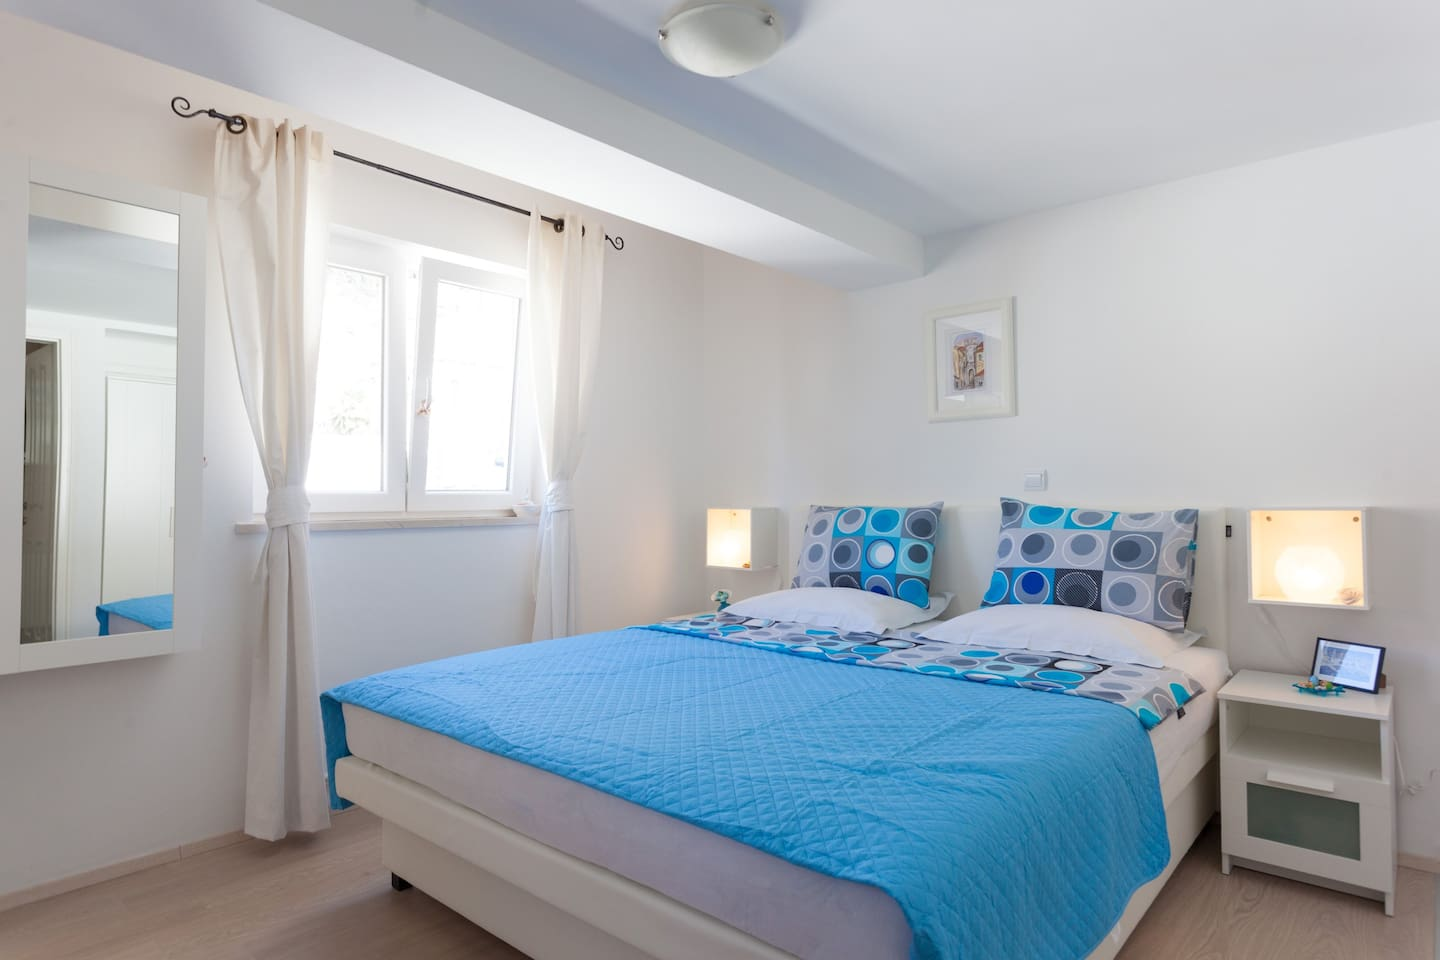 King size double bed for perfect rest